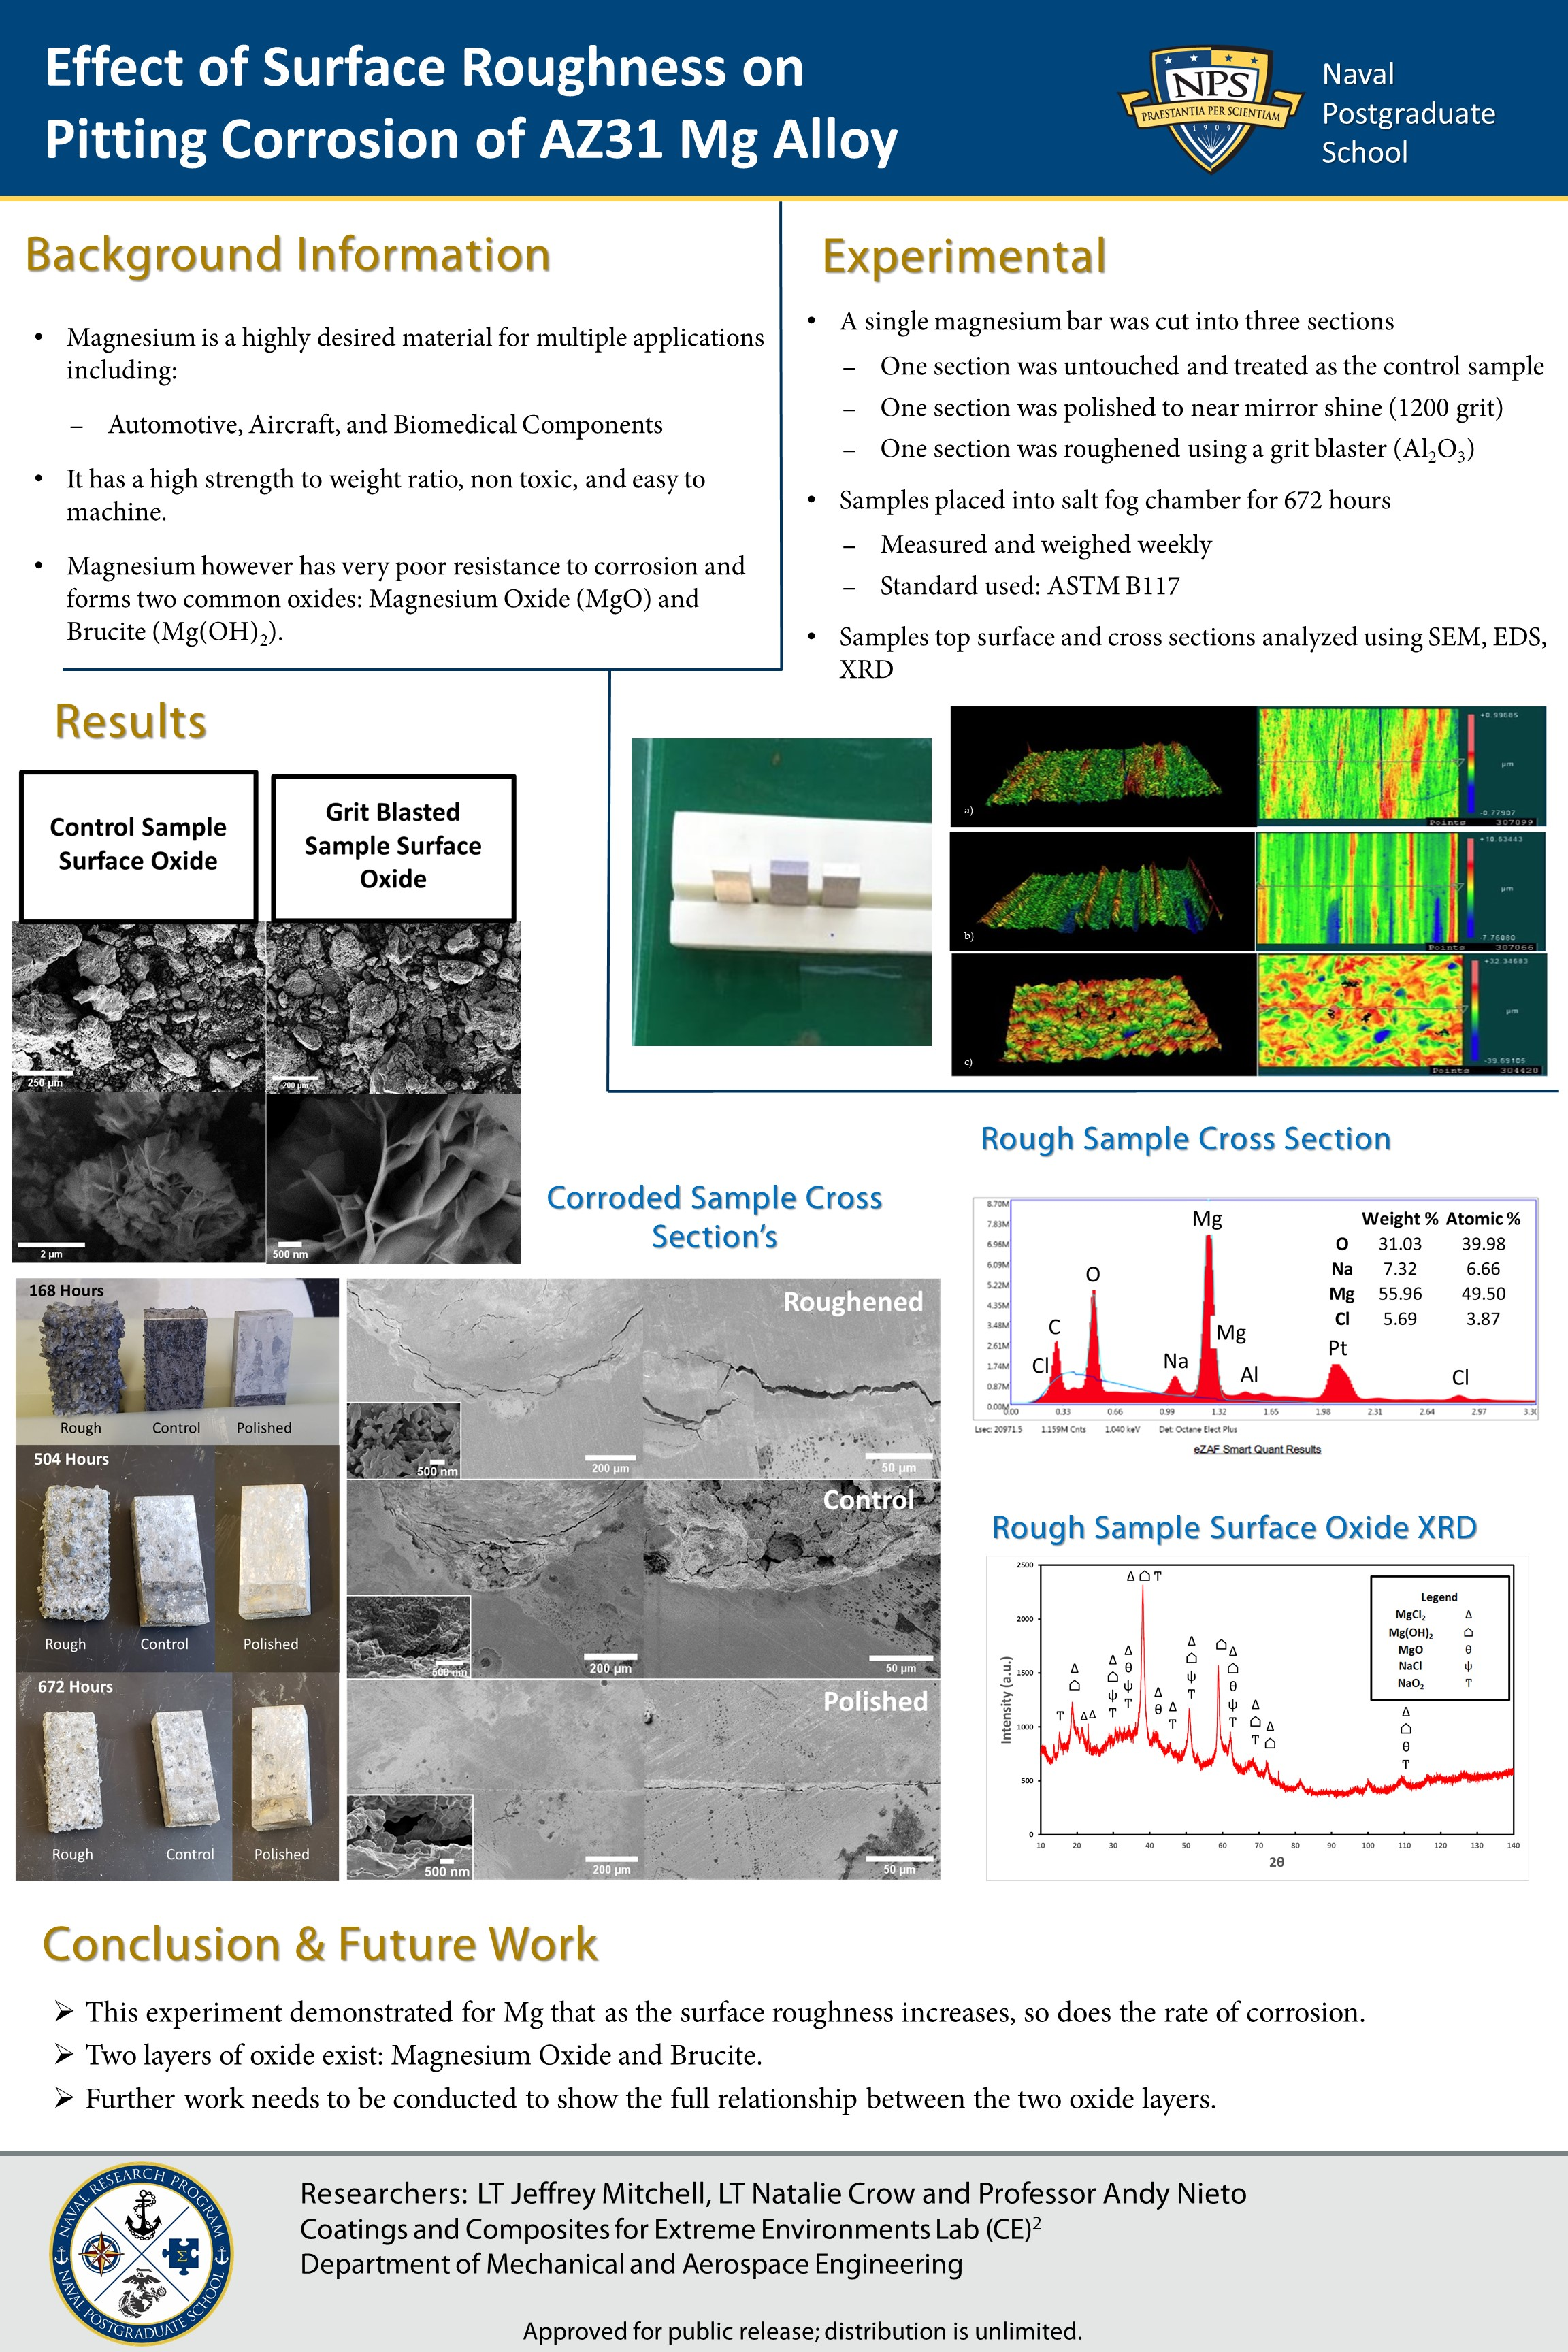 Effect of Surface Roughness on Pitting Corrosion of AZ31 Mg Alloy